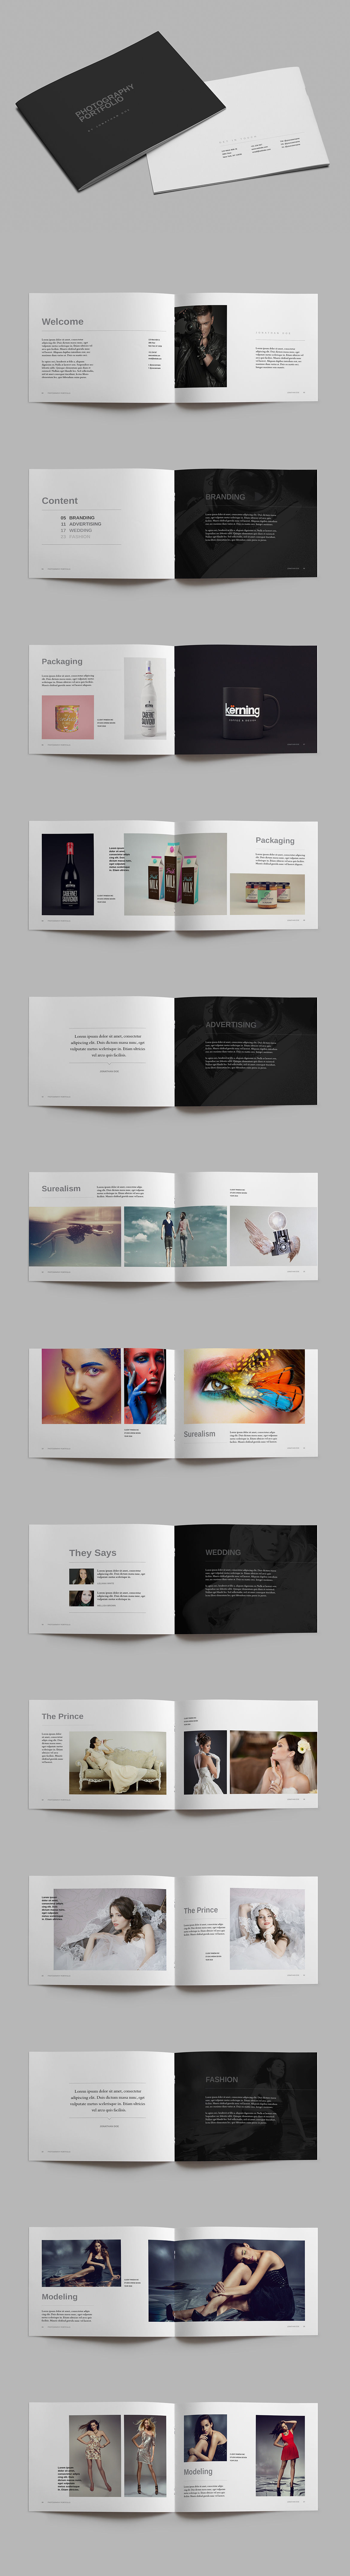 A Photography Portfolio Brochure Template InDesign INDD Pages - Photography portfolio template